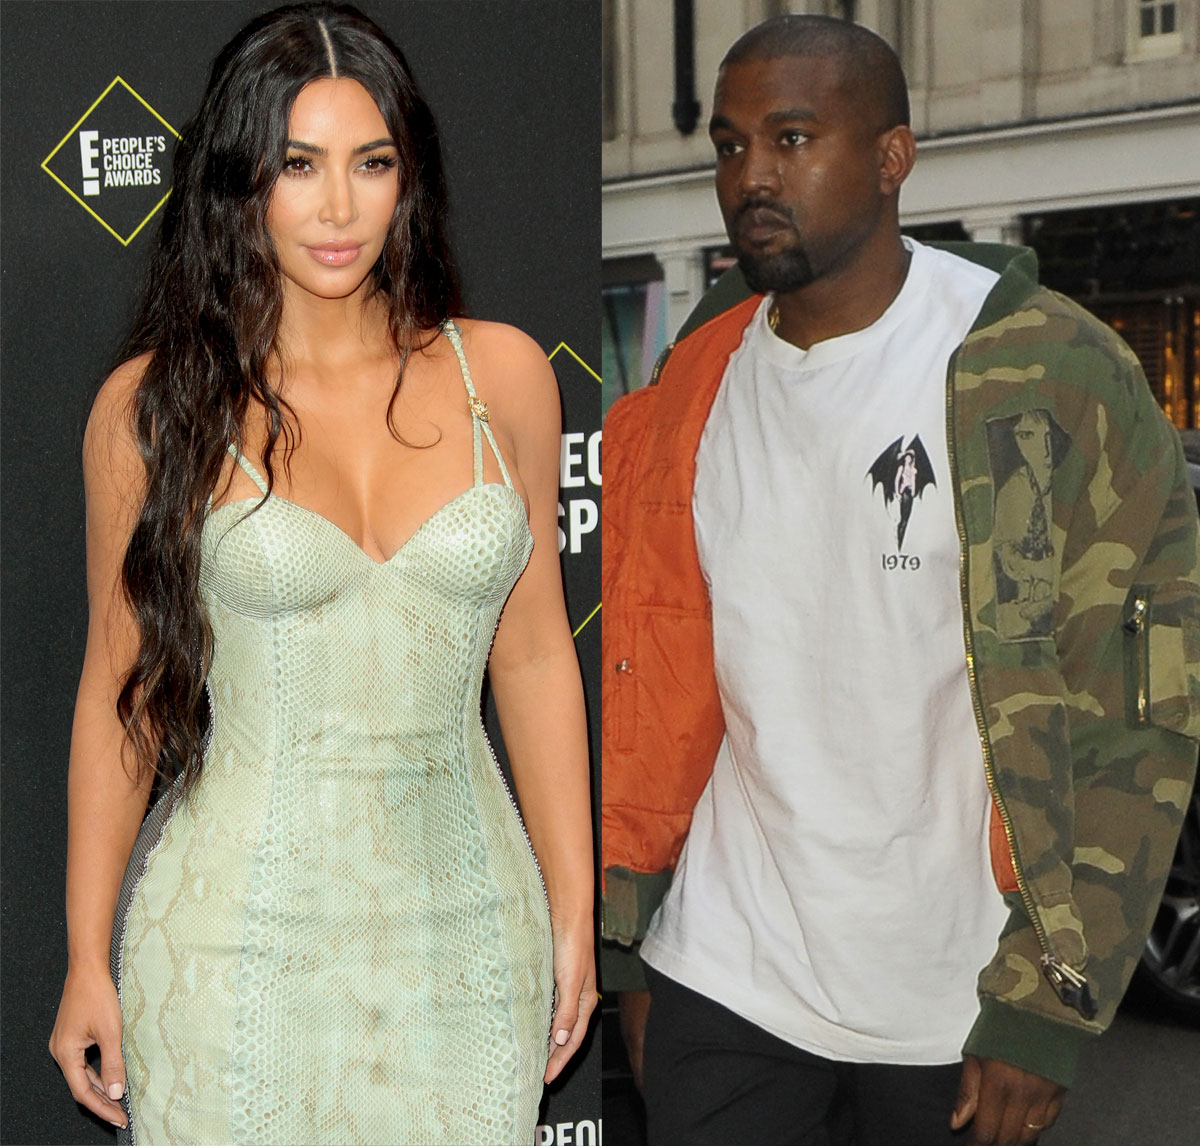 Kim Kardashian Reportedly 'Extremely Stressed,' Turns Focus To Co-Parenting With Kanye West As 'Standstill' Divorce Looms